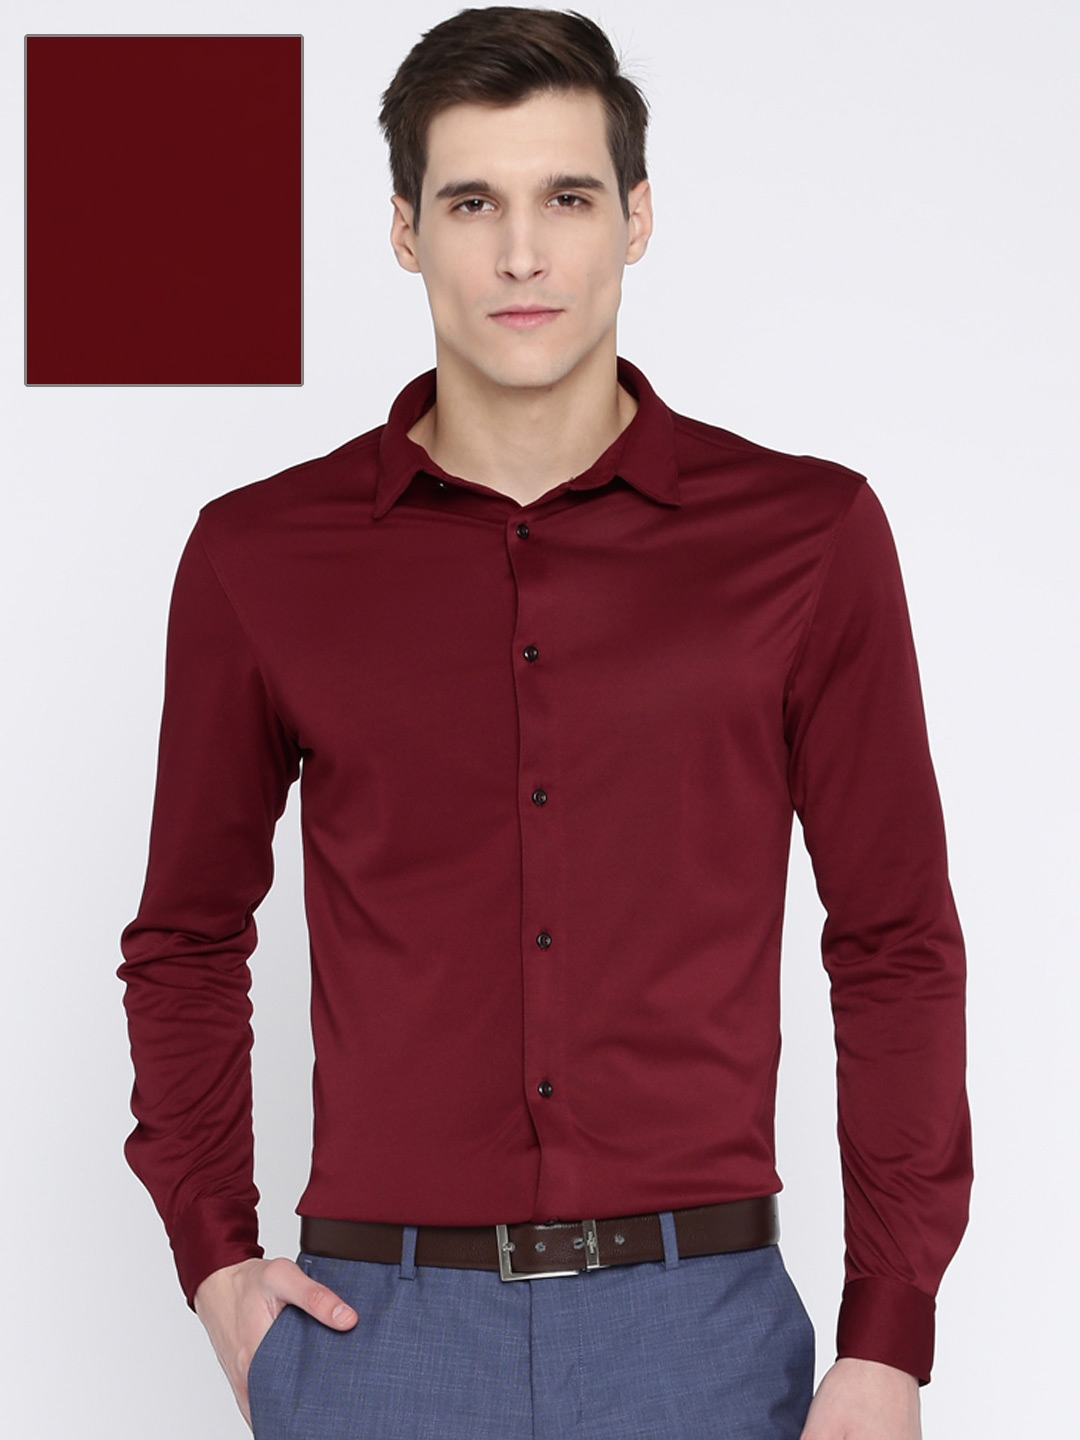 75526ed2982 Buy Arrow New York Men Maroon Super Slim Fit Solid Formal Shirt ...